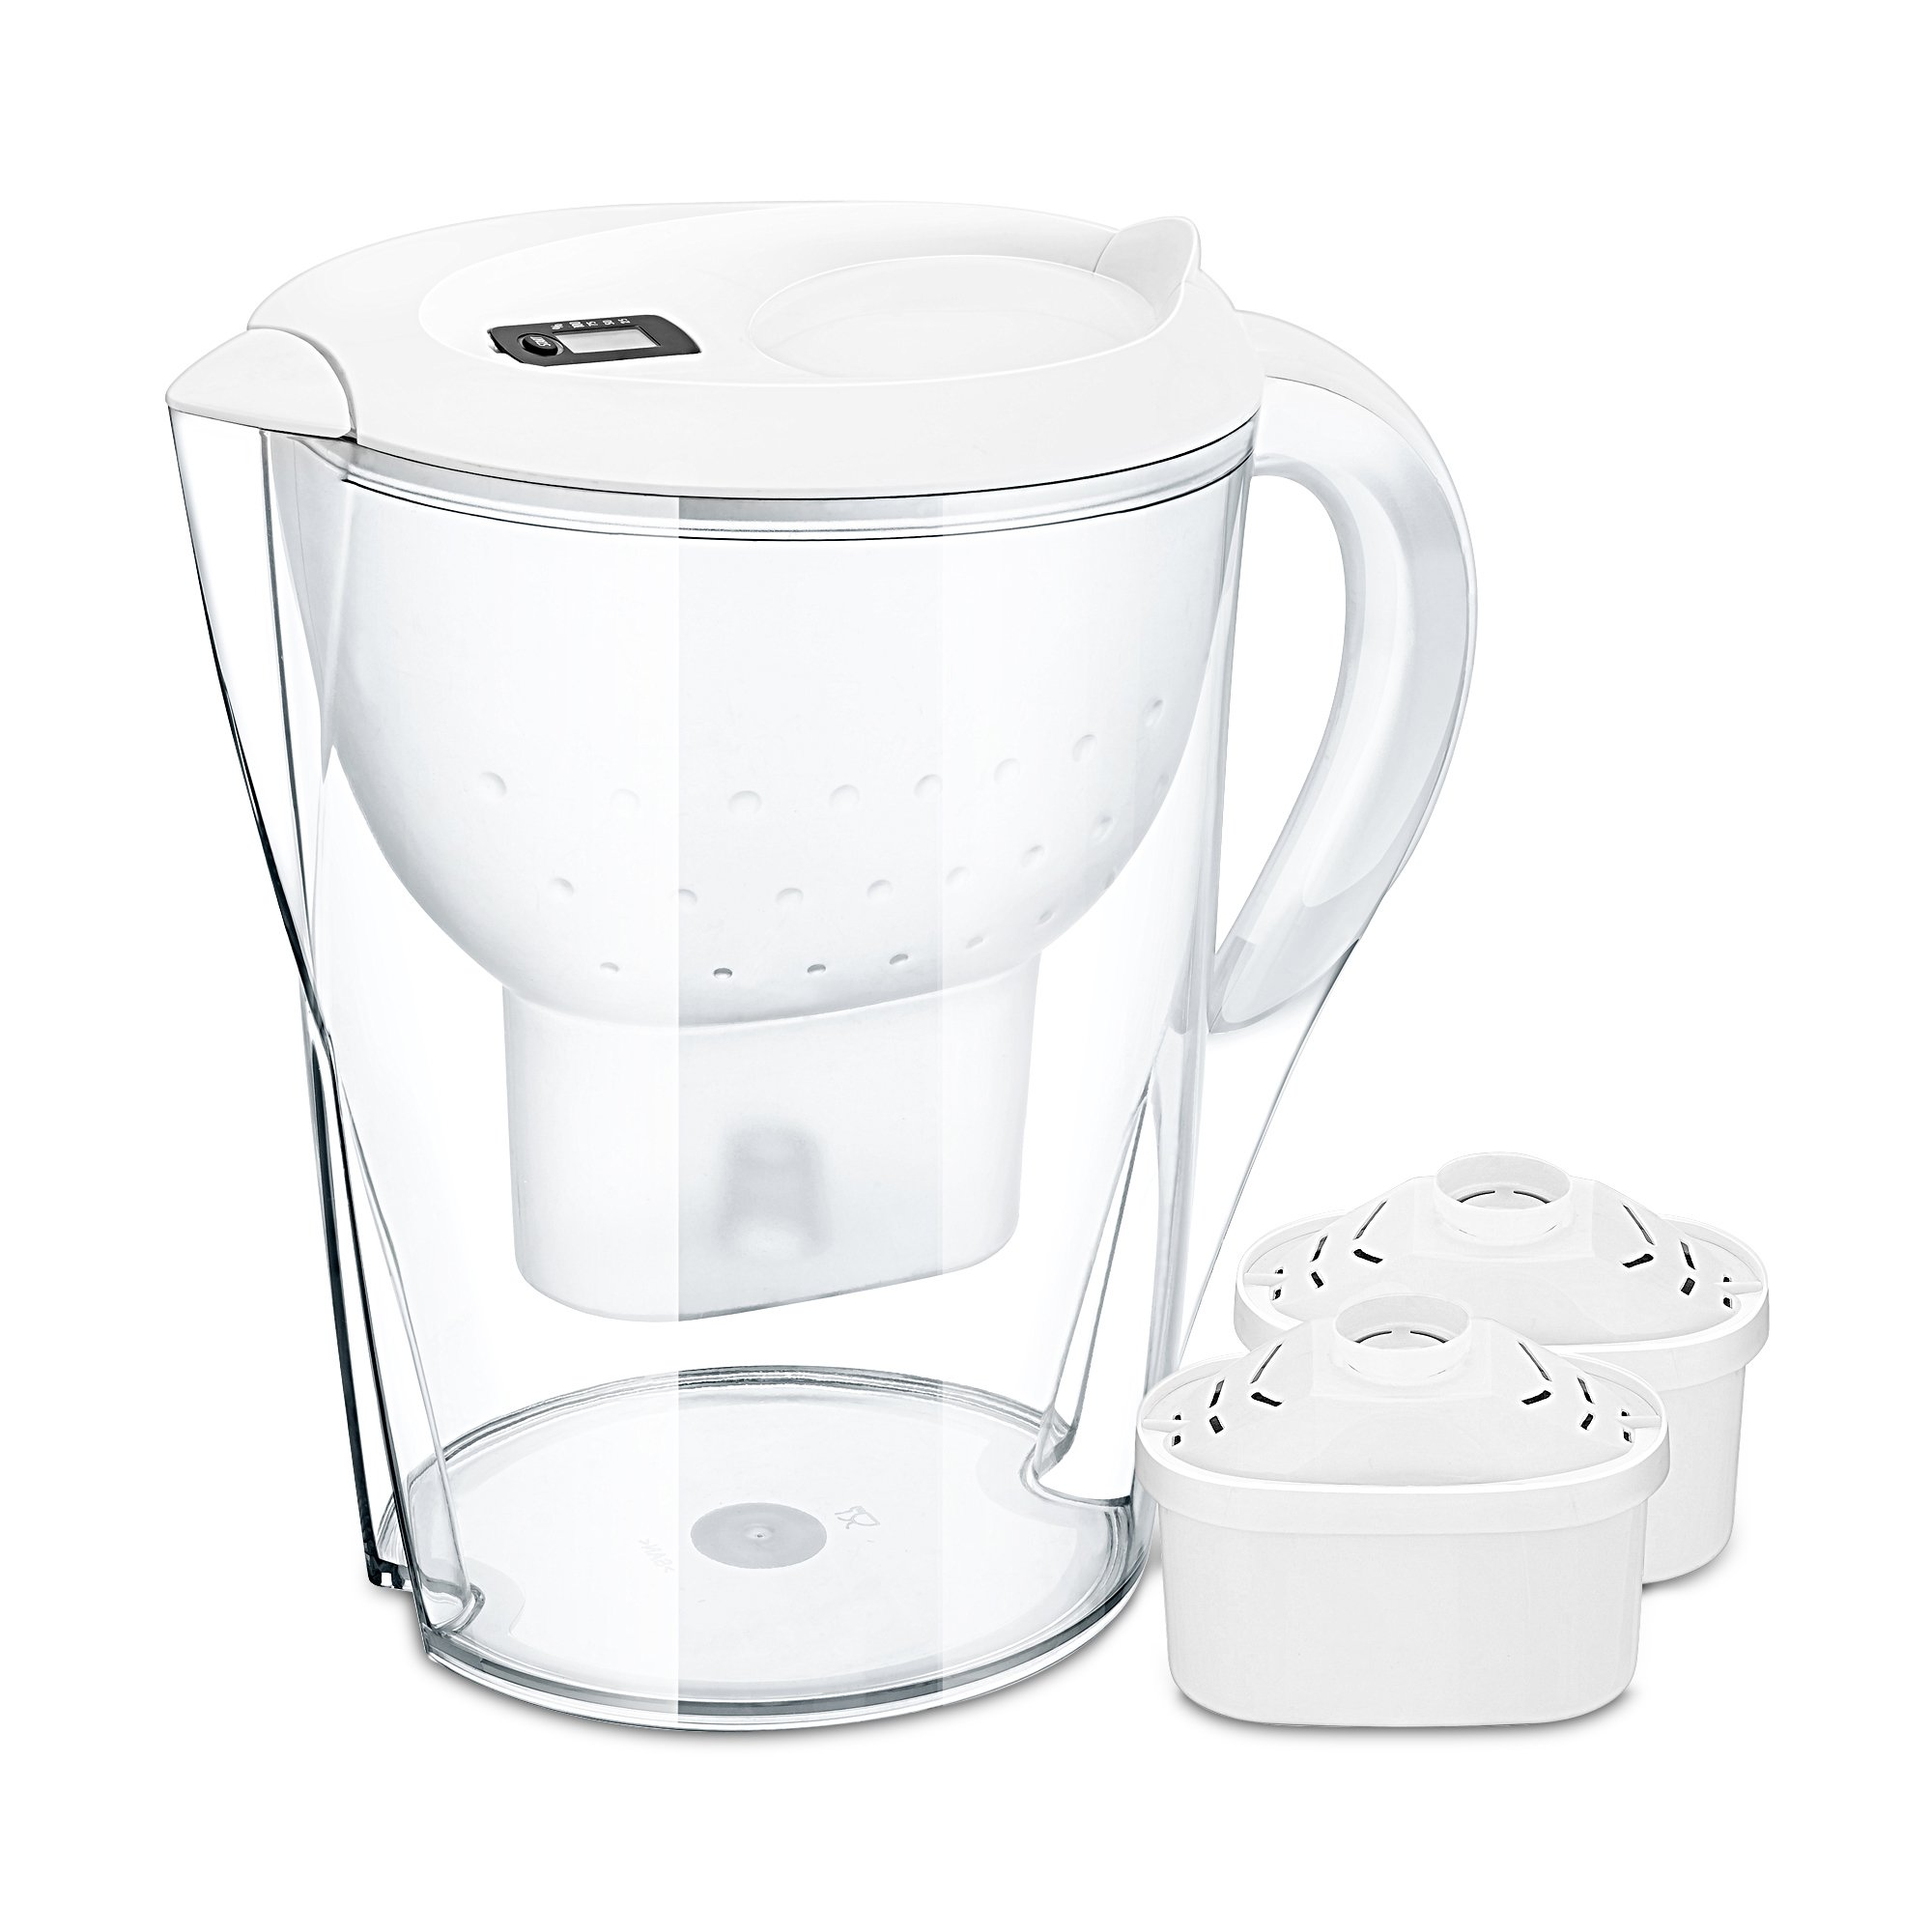 Stylife 14 Cups 3.5 L Water Pitcher Alkaline Water Jug With 2 Power Protect Filters And Replace Indicator Function